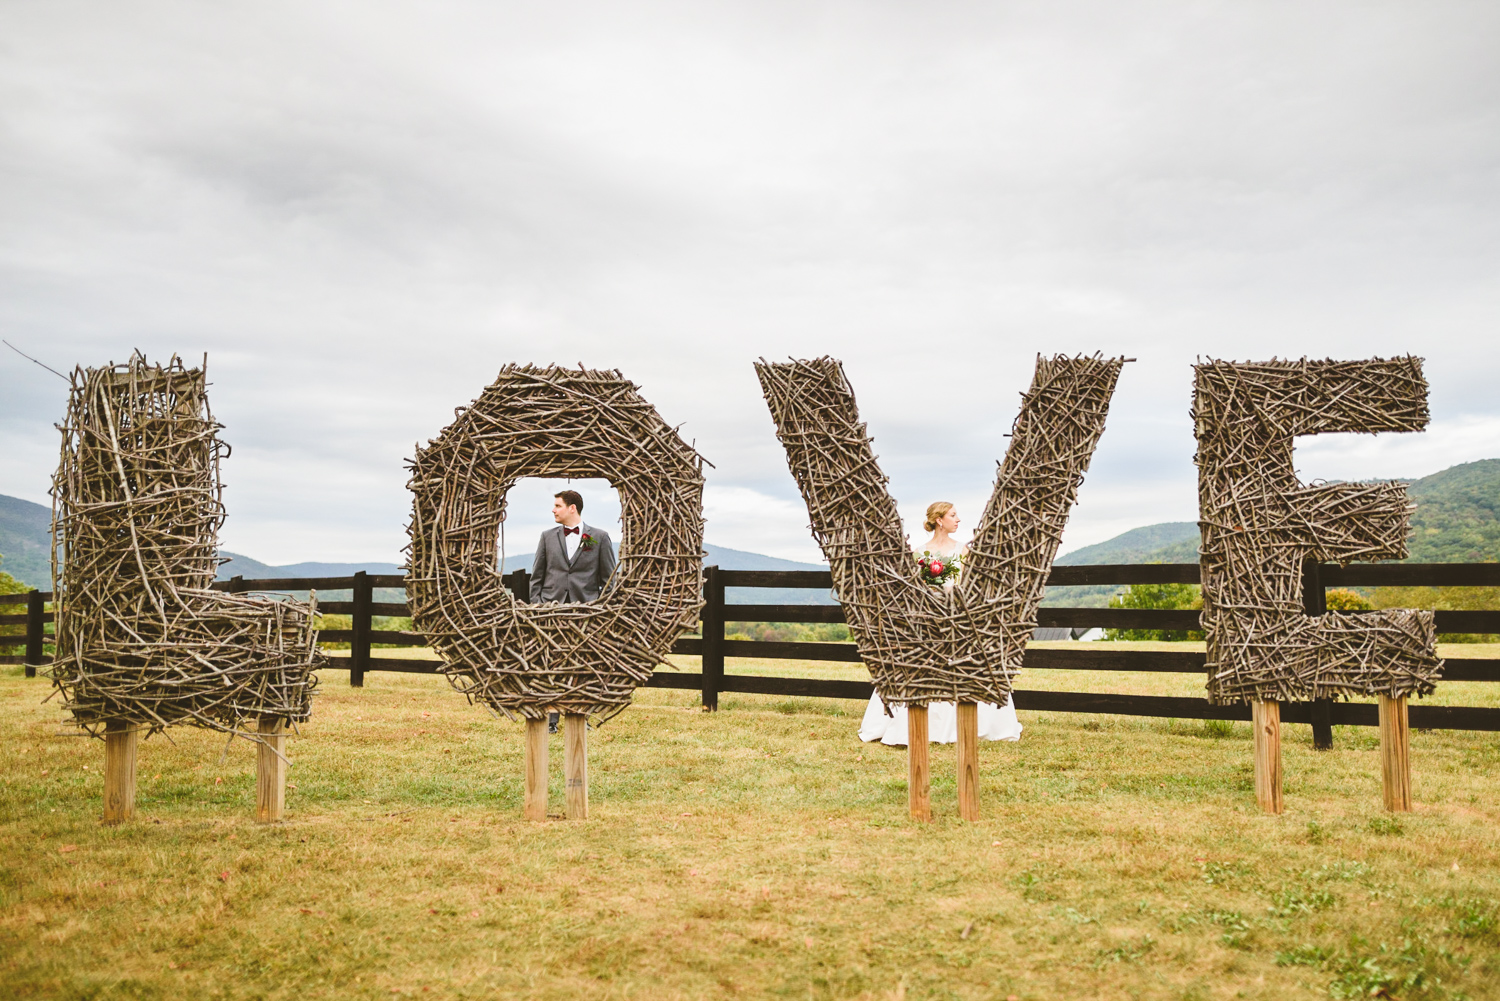 001 - love sign made out of sticks montfair resort farm richmond virginia wedding photographer.jpg